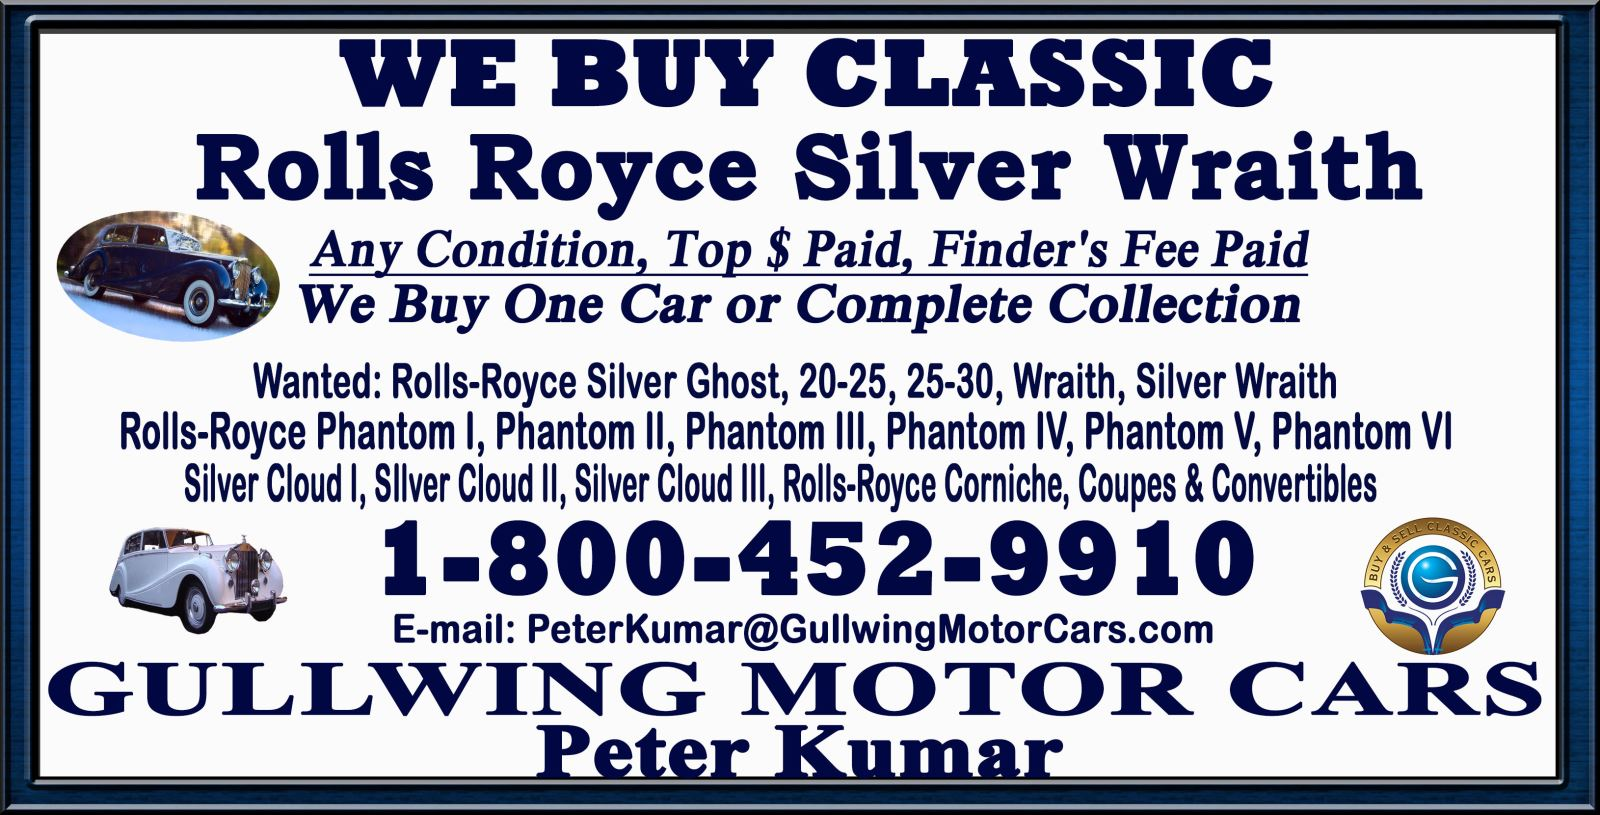 Sell Classic Rolls Royce Silver Ghost | Call Gullwing Motor if Vintage Rolls Royce Silver Ghost For Sale